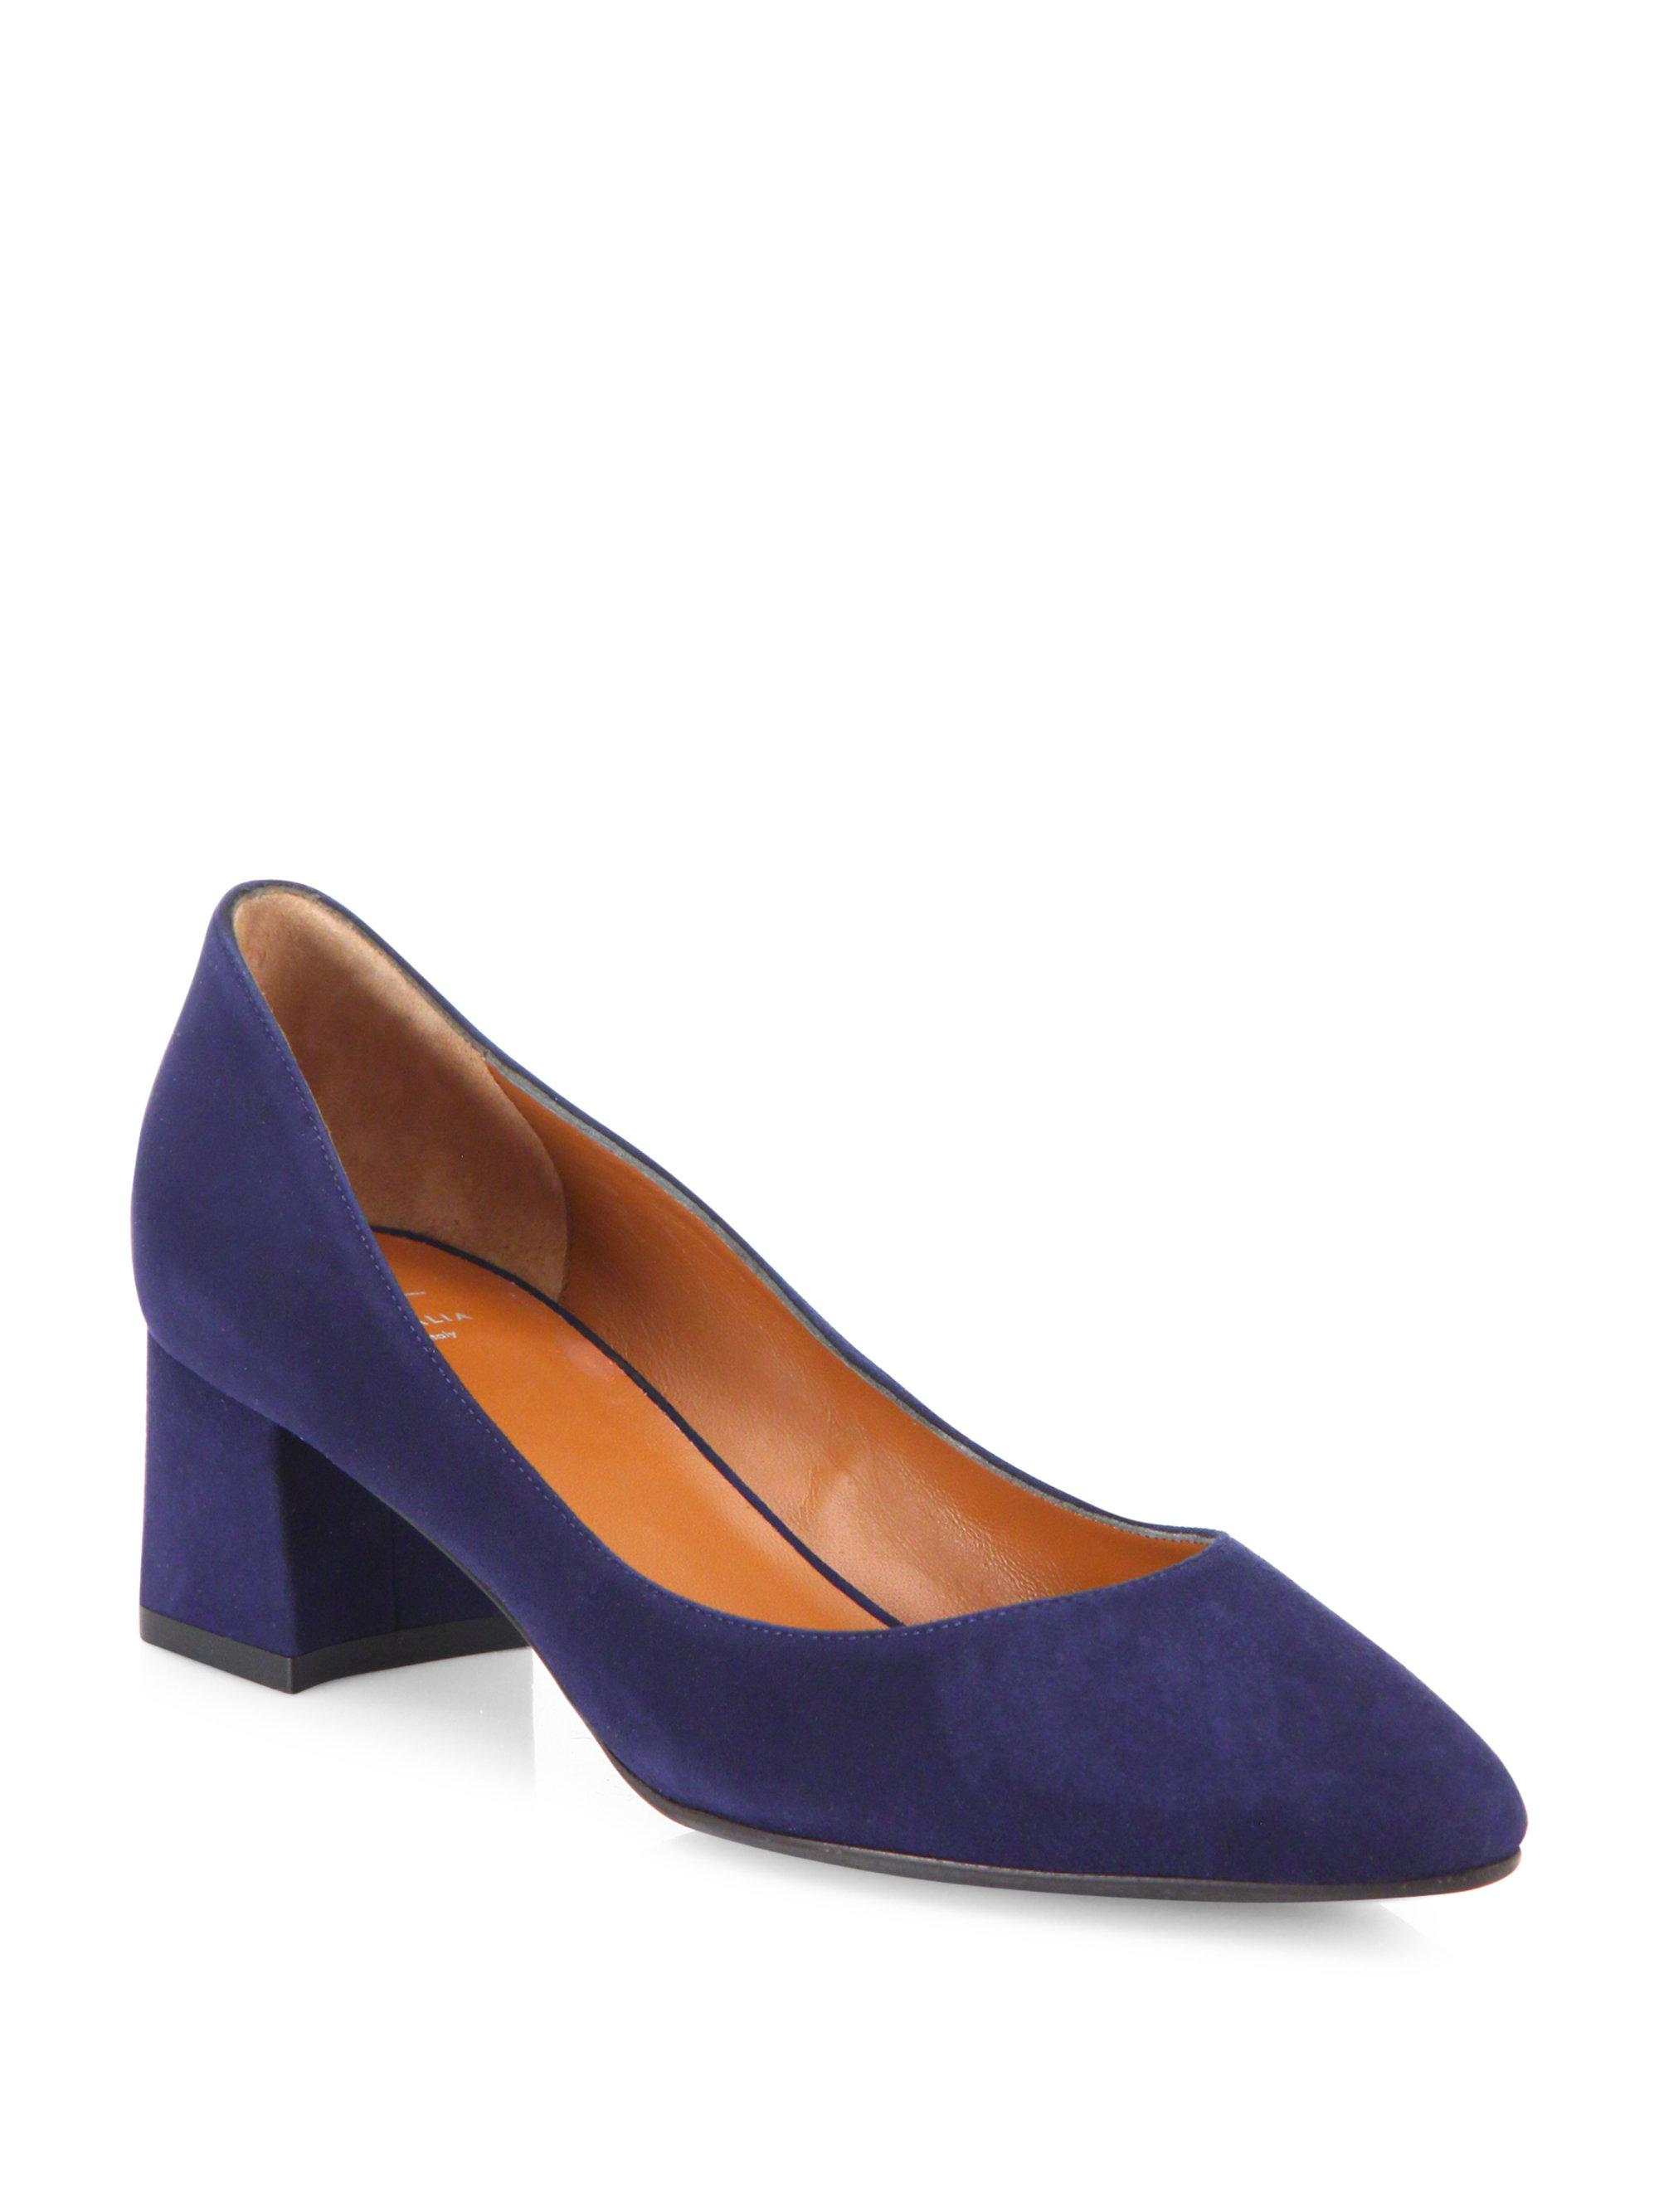 6277e40d810a Lyst - Aquatalia Phoebe Suede Block Heel Pumps in Blue